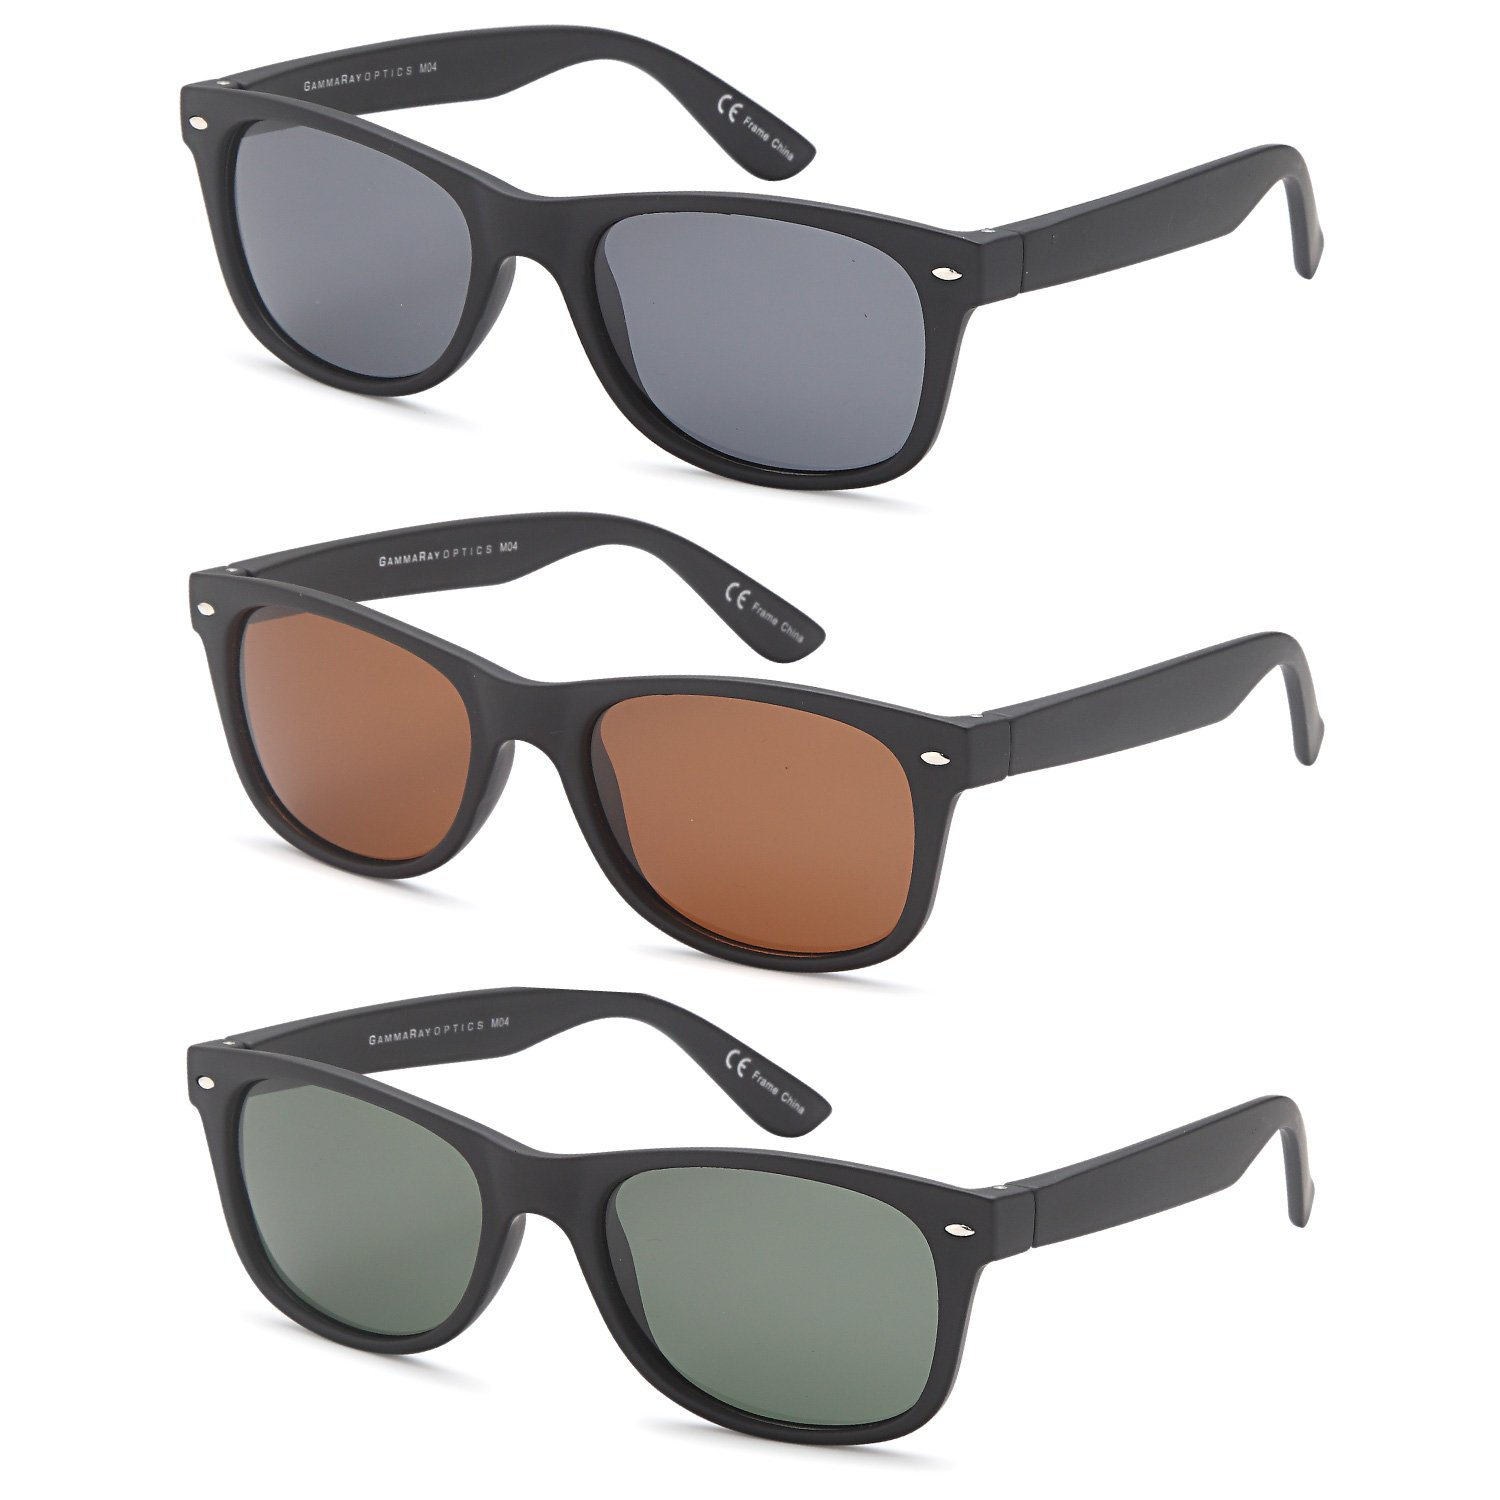 Gamma Ray Polarized UV400 Classic Style Sunglasses with Mirror Lens, 3 PACK - Mixed